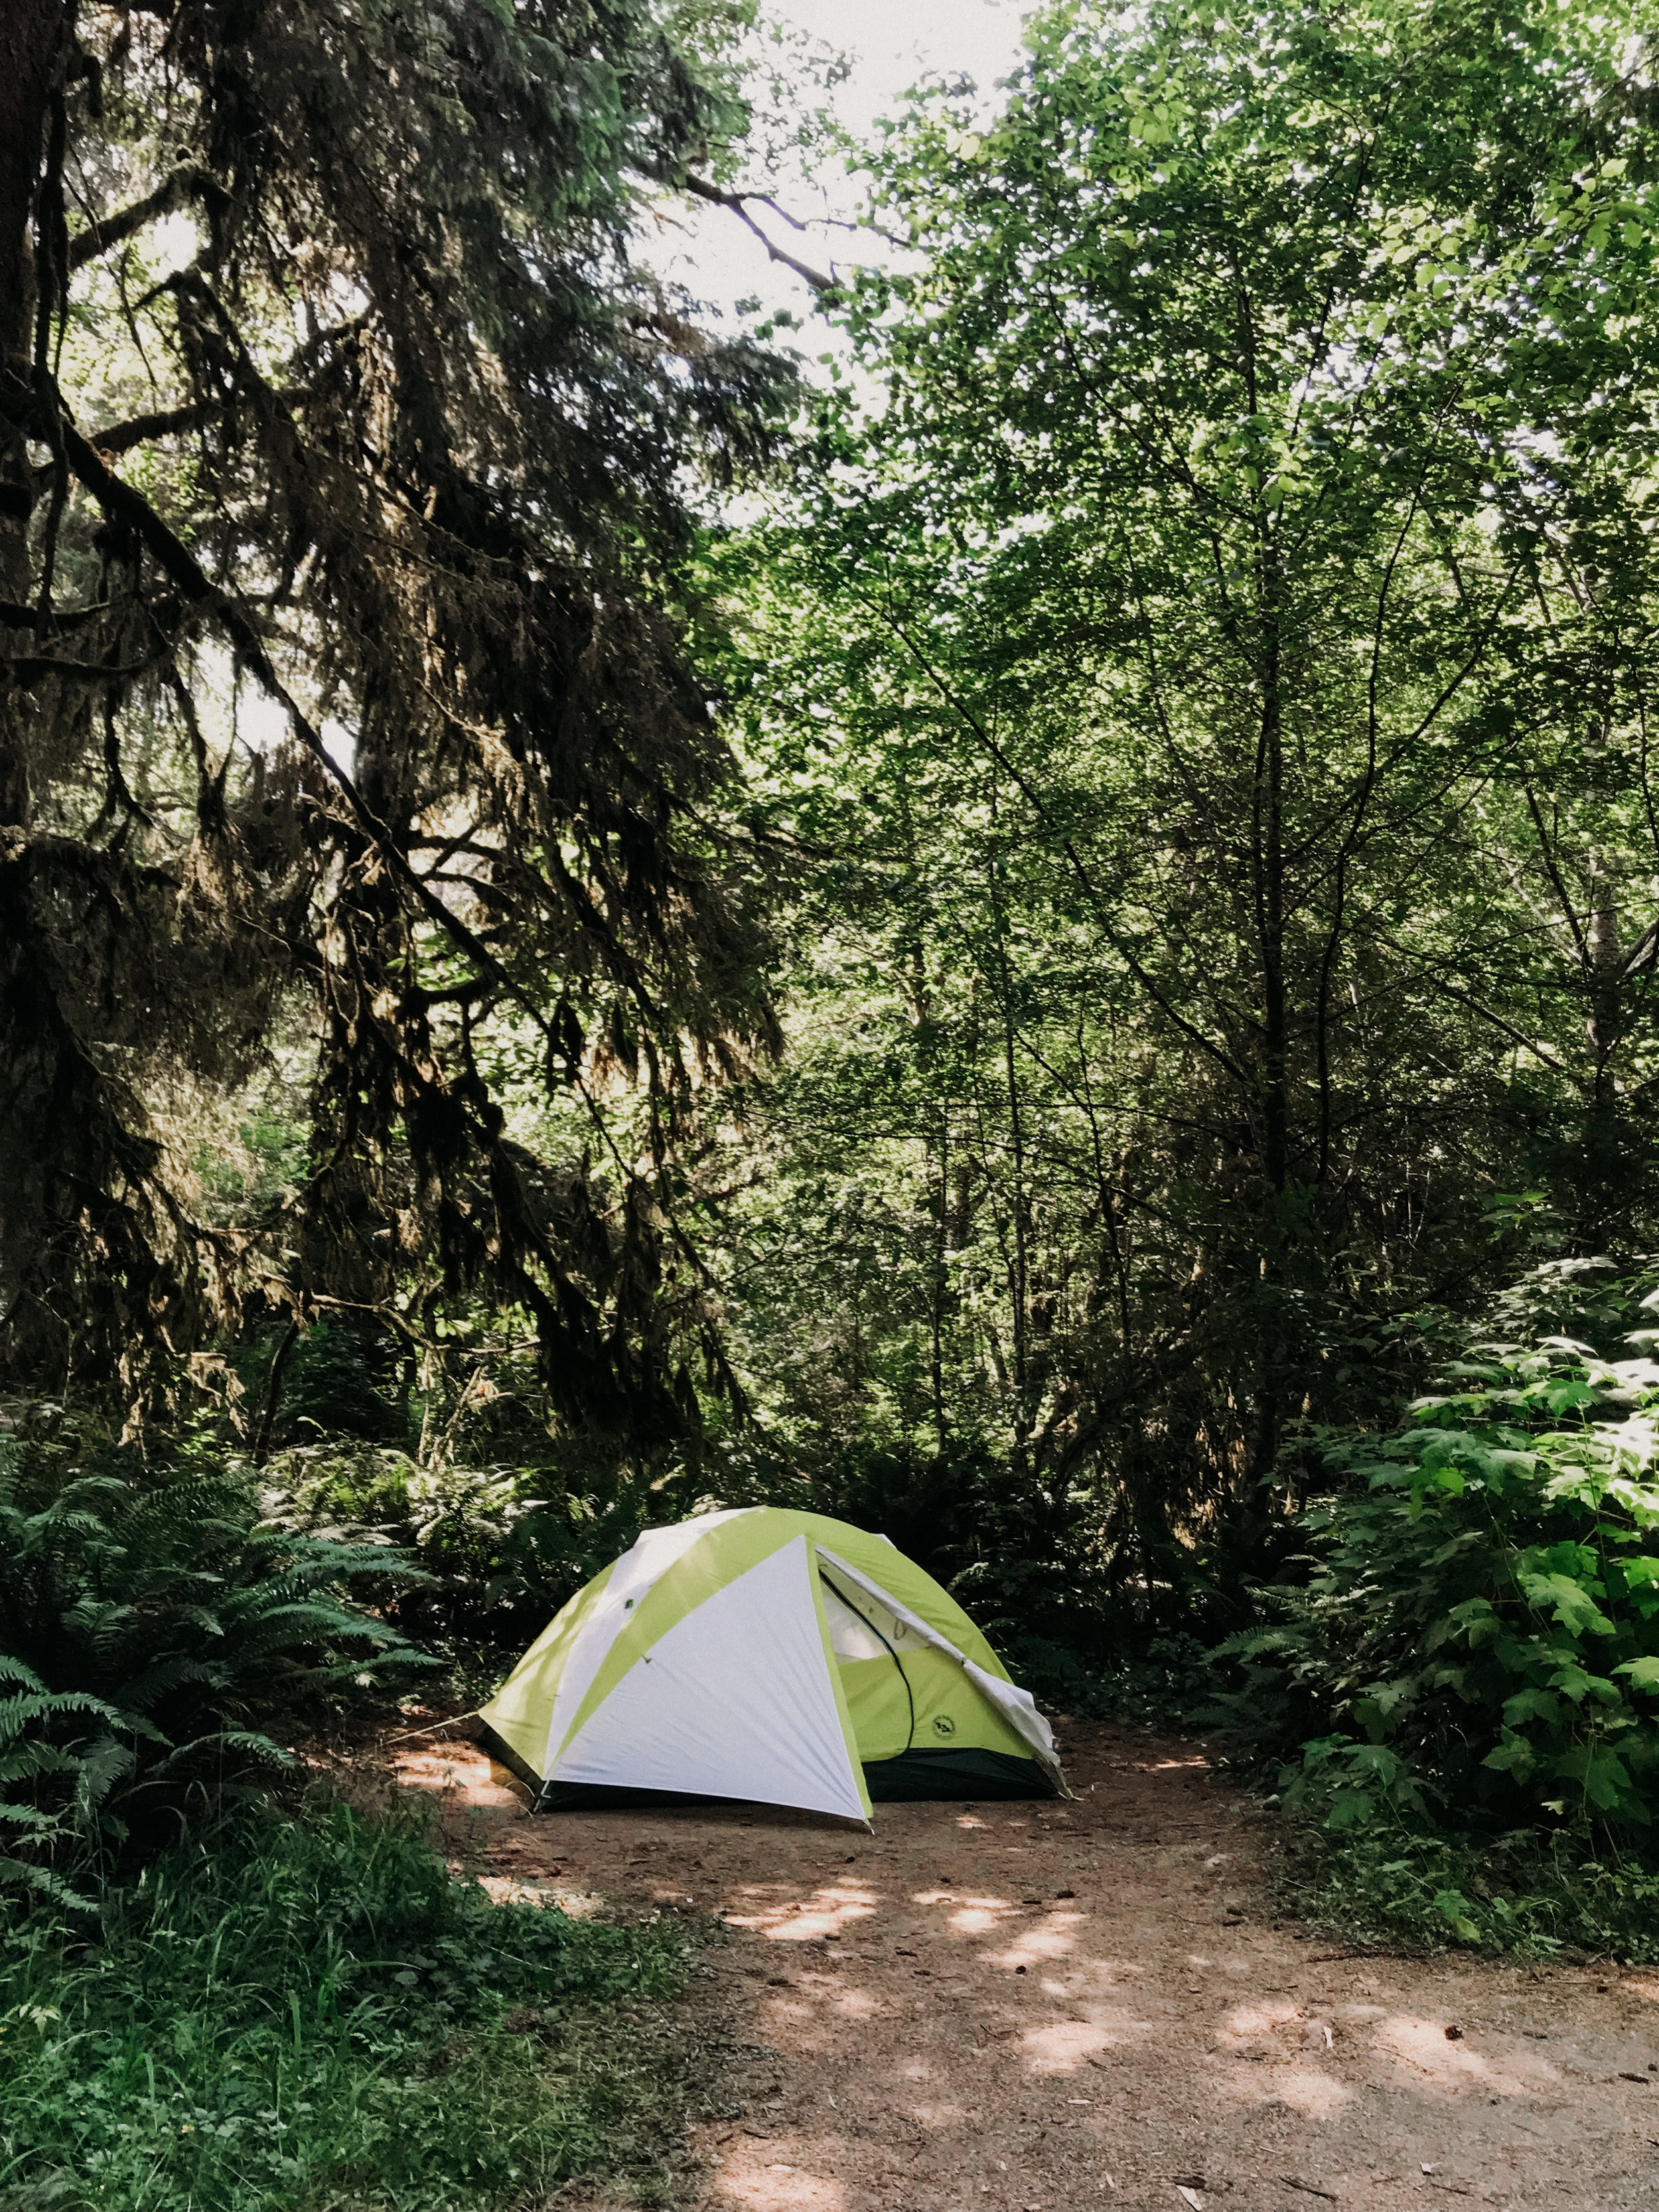 Camping at Prairie Creek Redwoods State Park (loved this campground so much! This little tent was home for most of the trip.